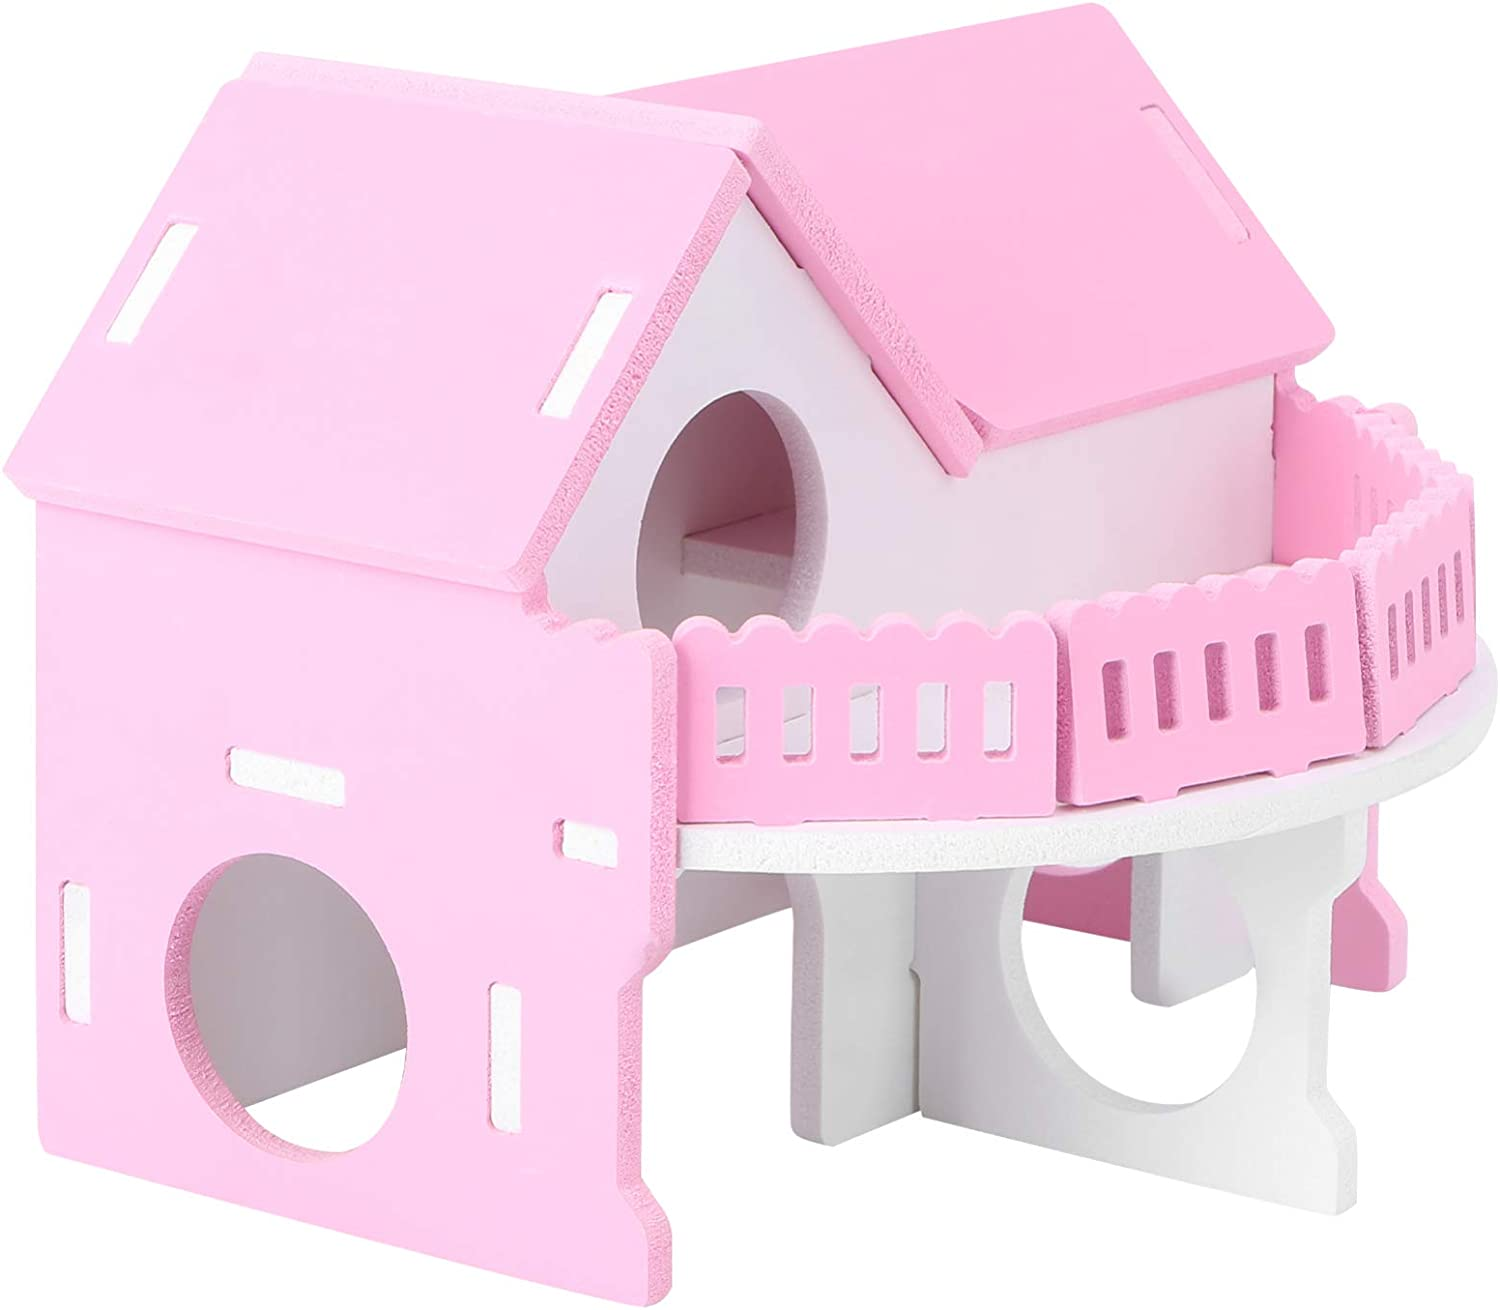 Balacoo Hamster House Villa Sleeping Nest Small Hamster Wooden Home Bird Cage for Hamster Chinchilla Small Pets (Pink)